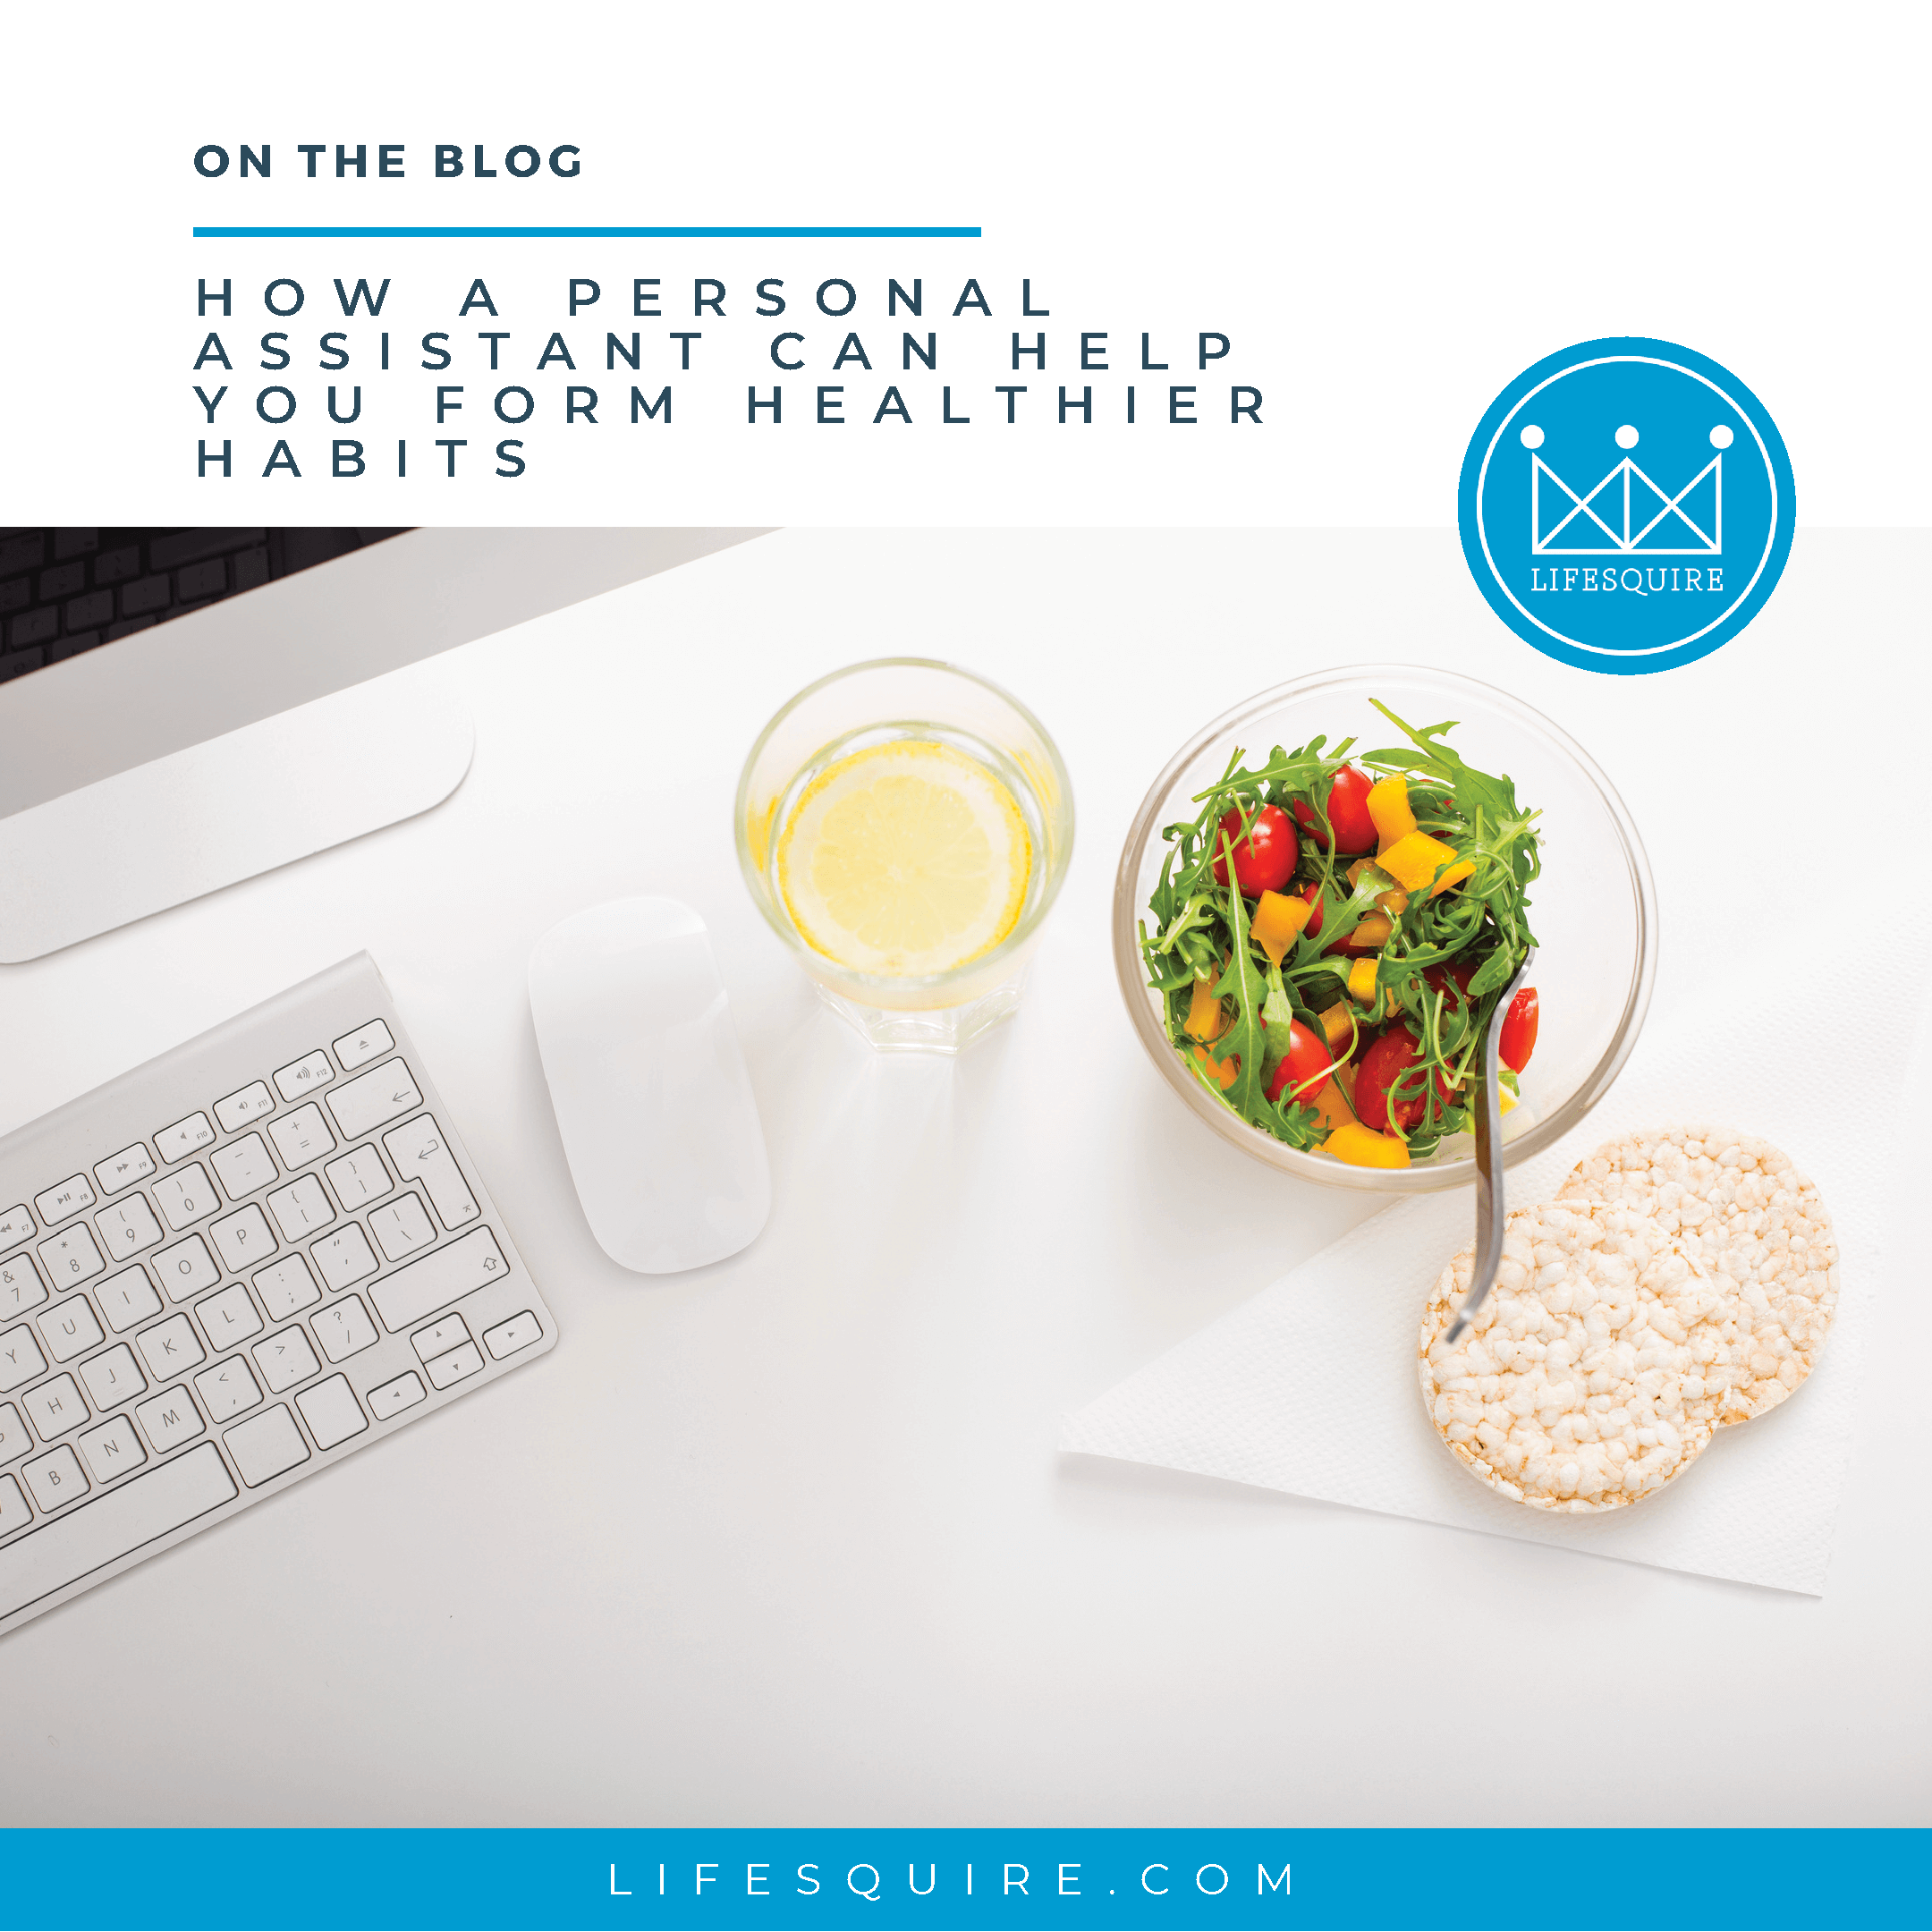 A keyboard with a salad a small piece of bread and a cup of tea next to it. The title of the blog is displayed at the top, reading: How a Personal Assistant Can Help You Form Healthier Habits